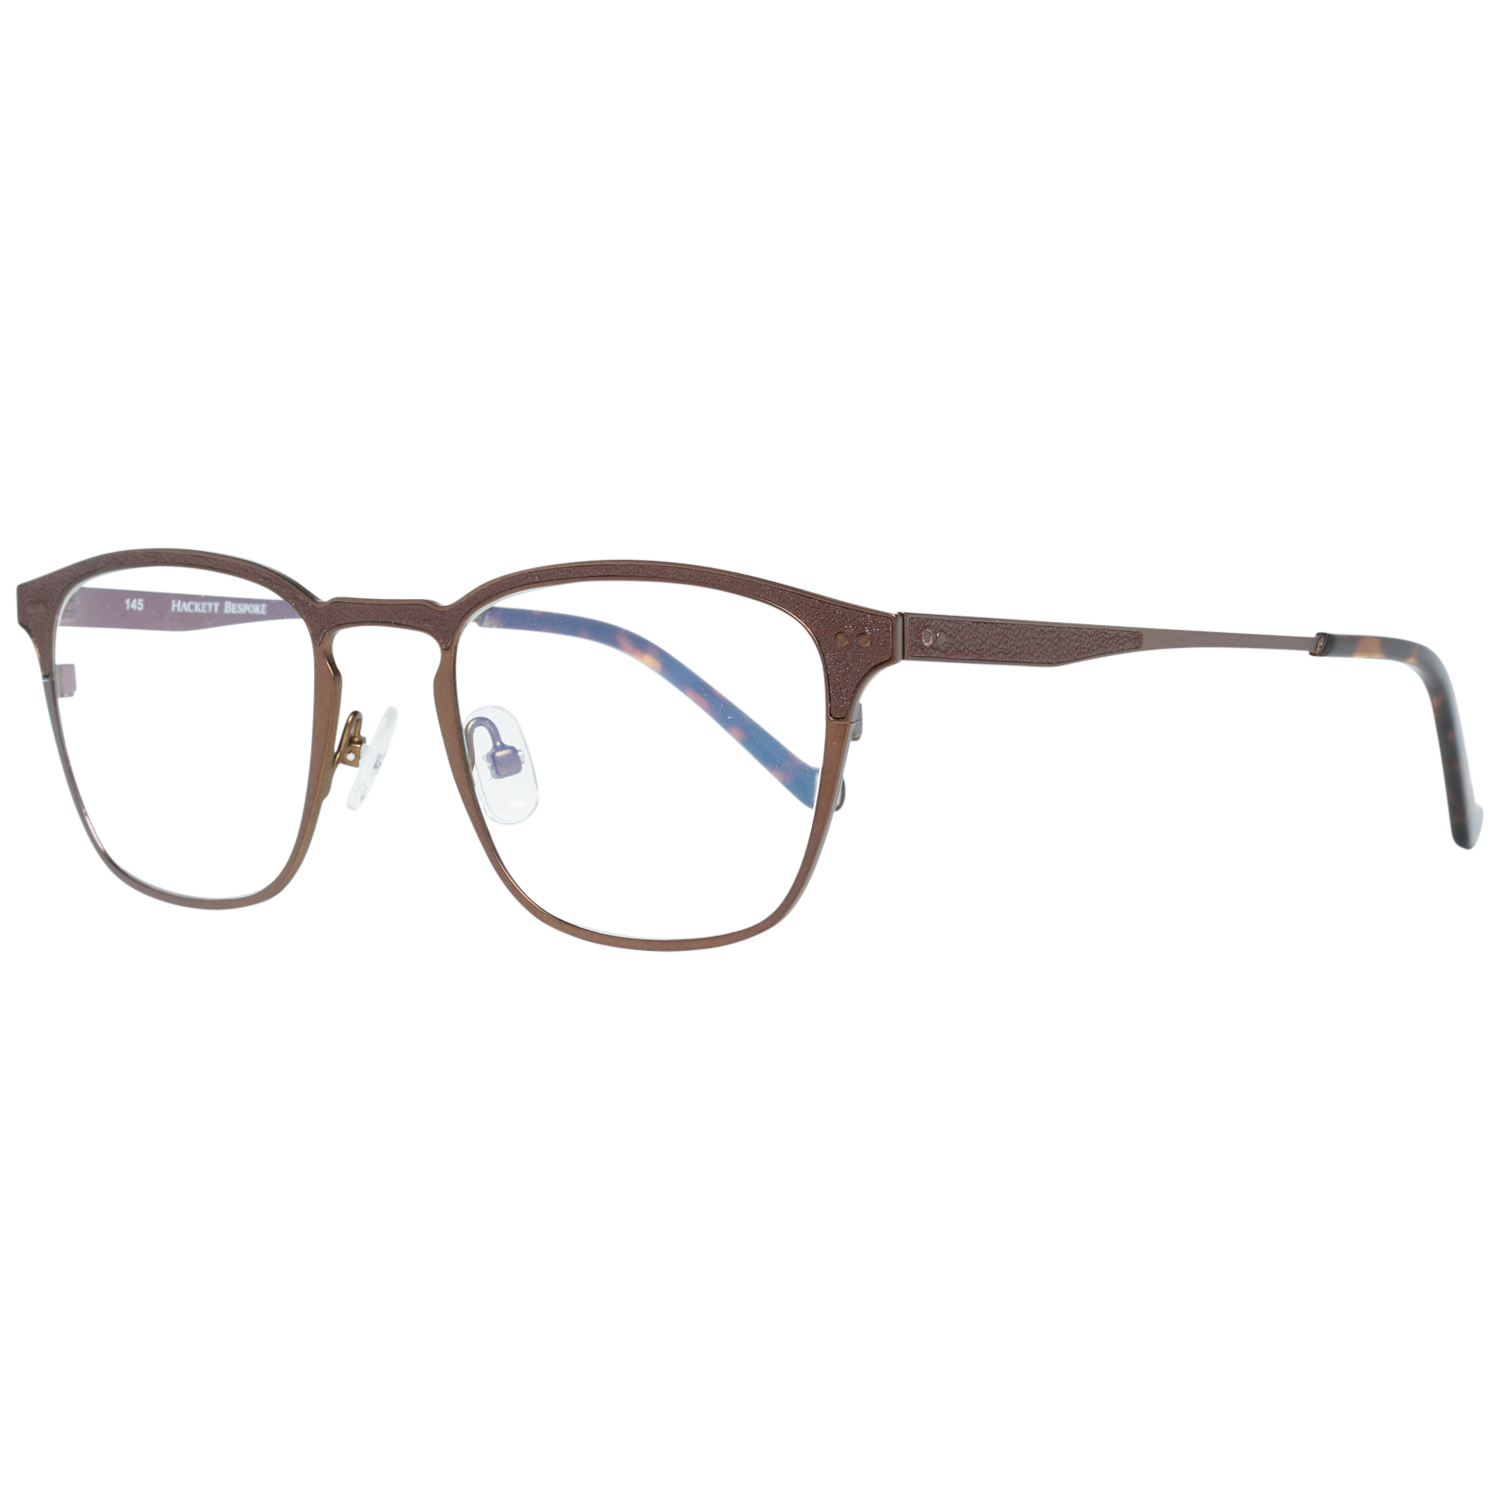 Hackett Bespoke Optical Frame HEB162 121 49 Brown